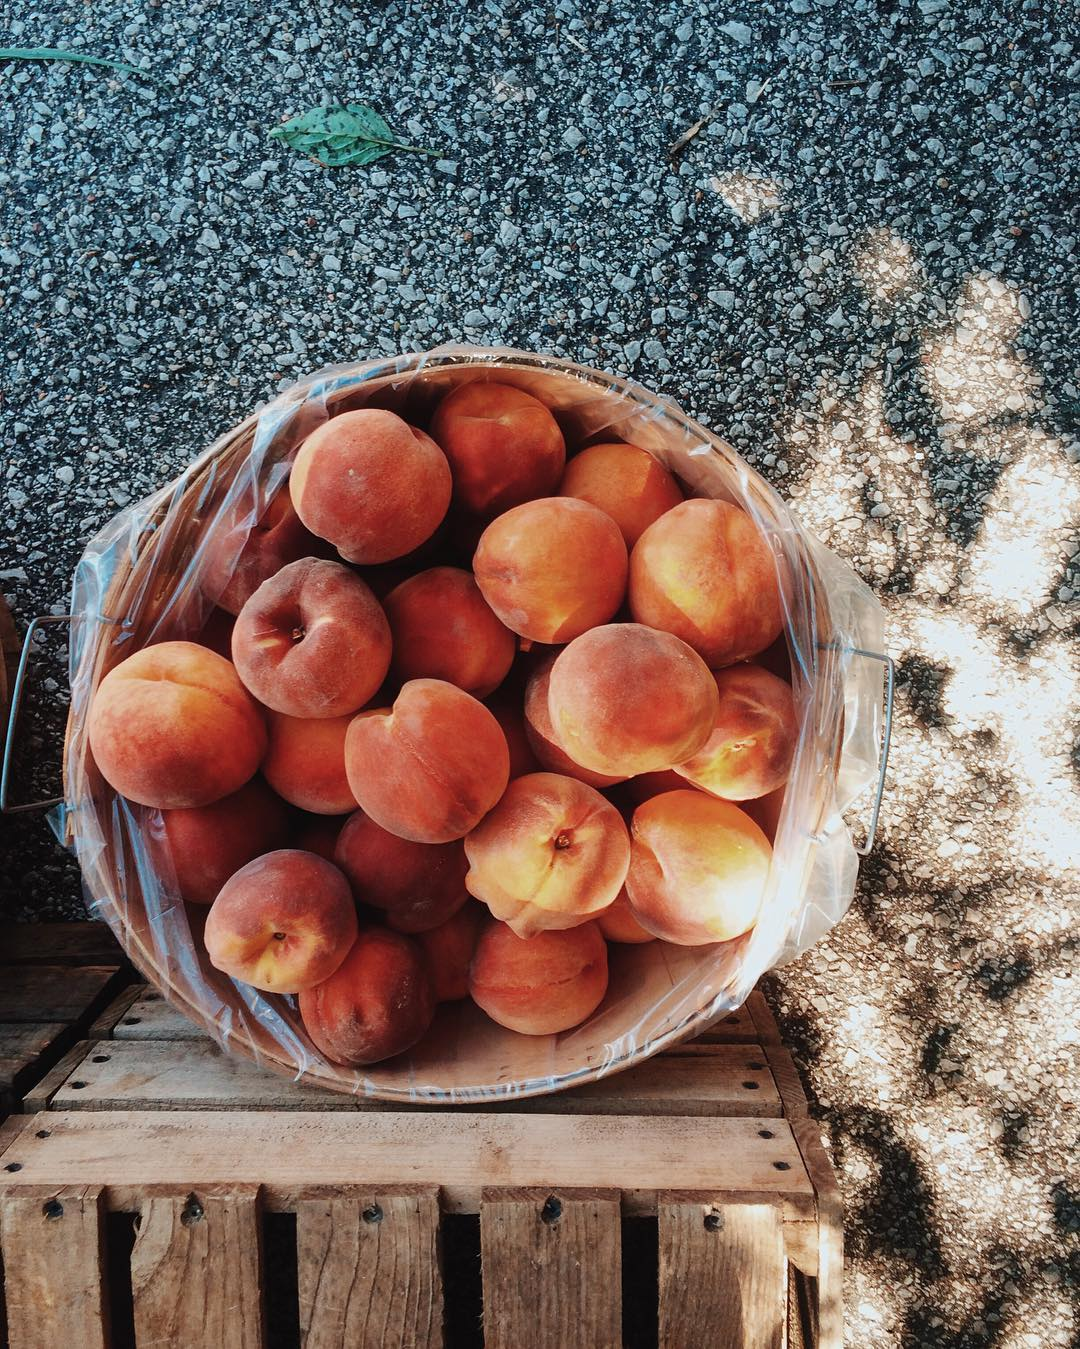 IMAGE: IG user @emilieabischoff / POST: Perfection is a full peck of peaches